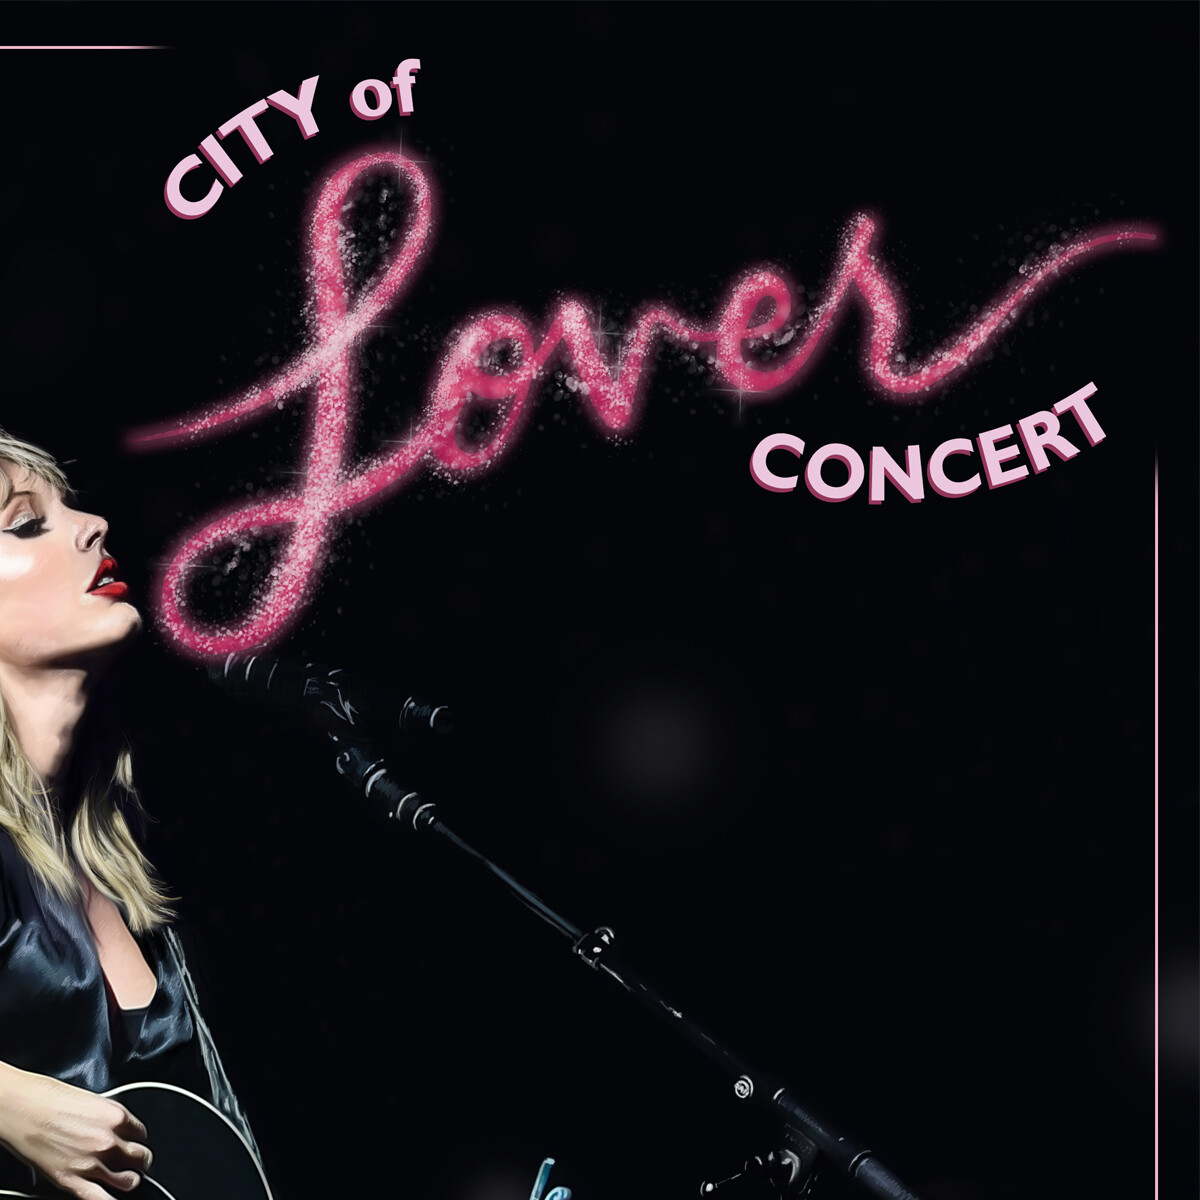 city of lover taylor swift poster